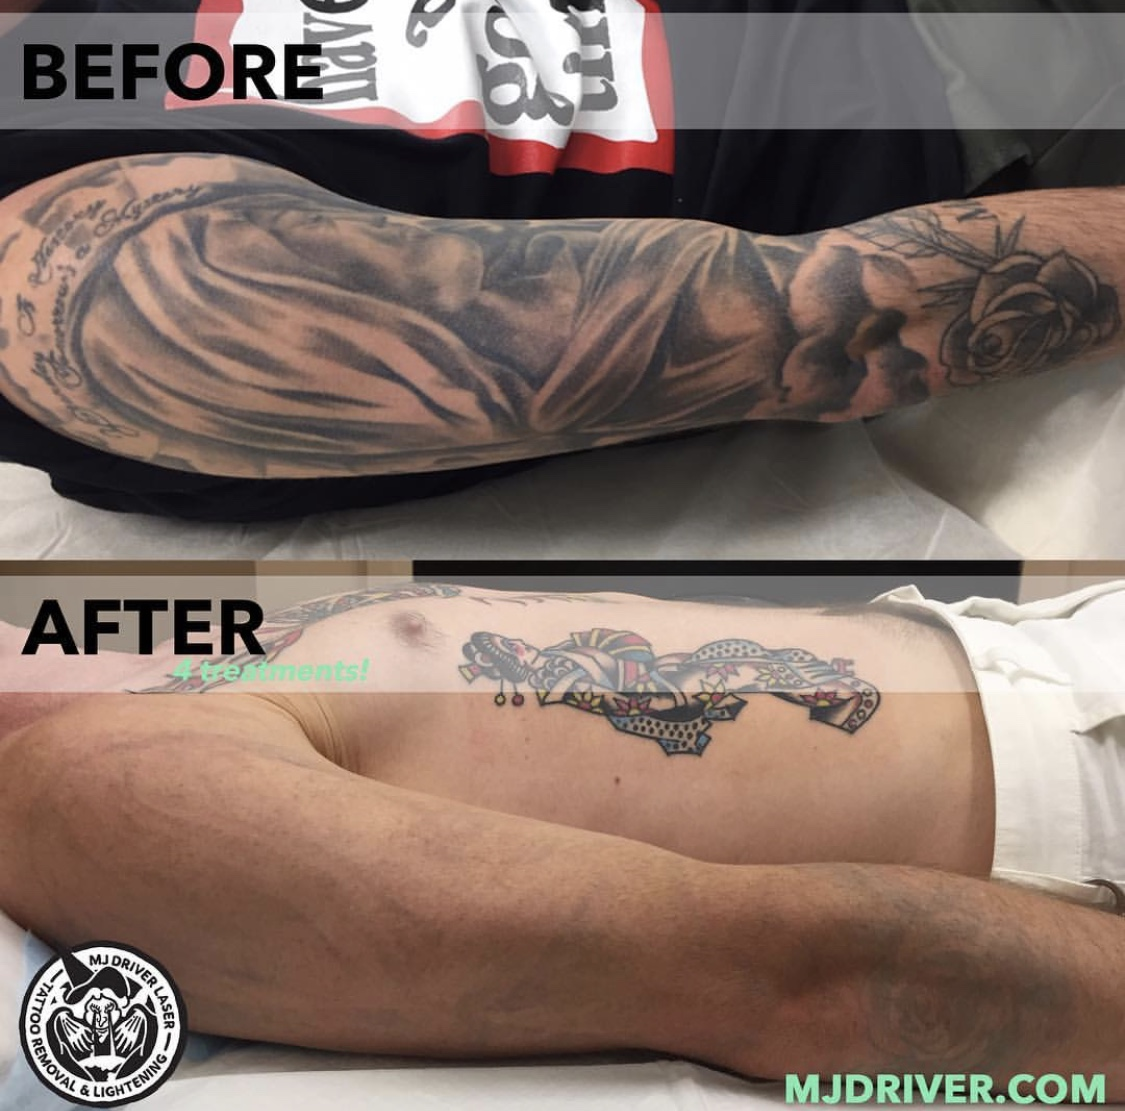 NEW | Before and After Laser Tattoo Removal — MJ Driver Laser